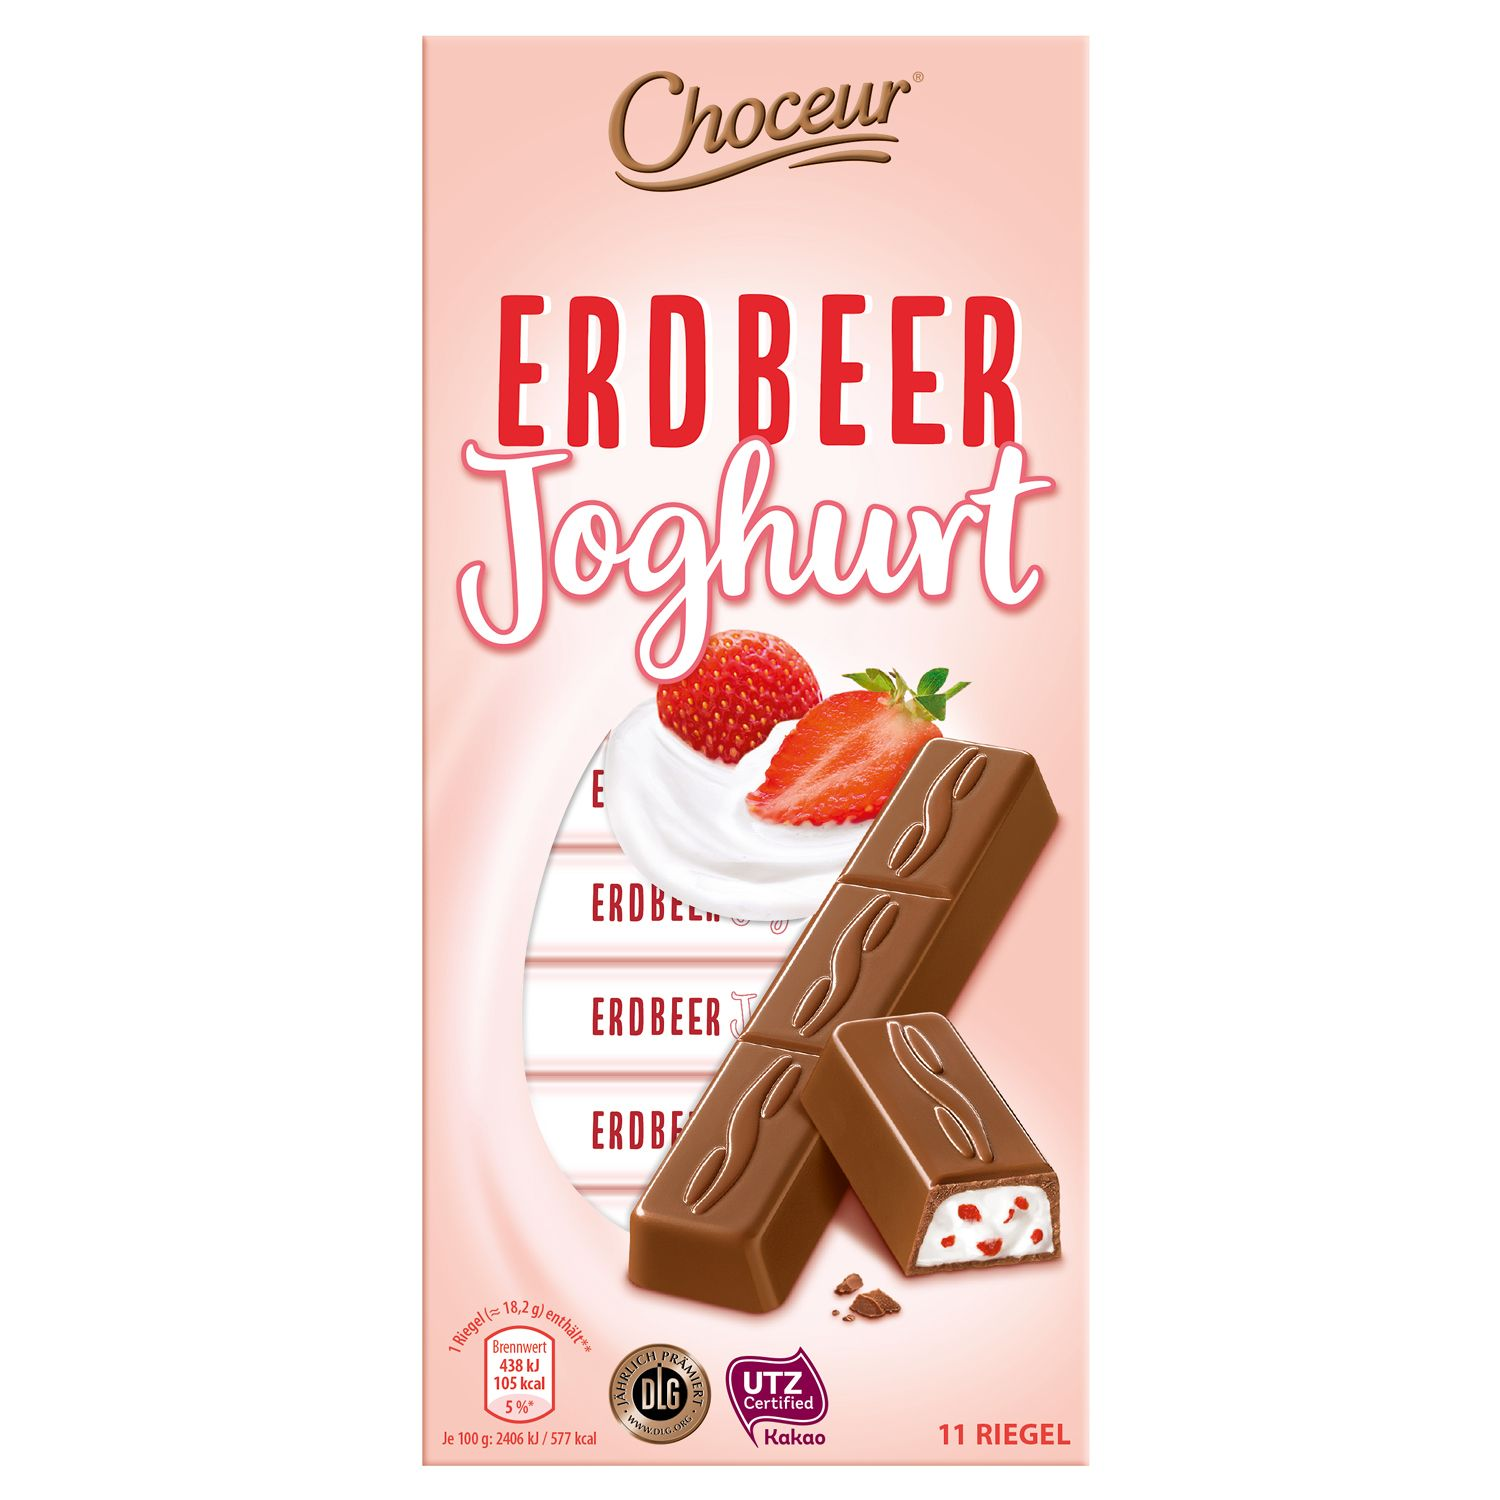 Choceur Schokoriegel-Sortiment 200g